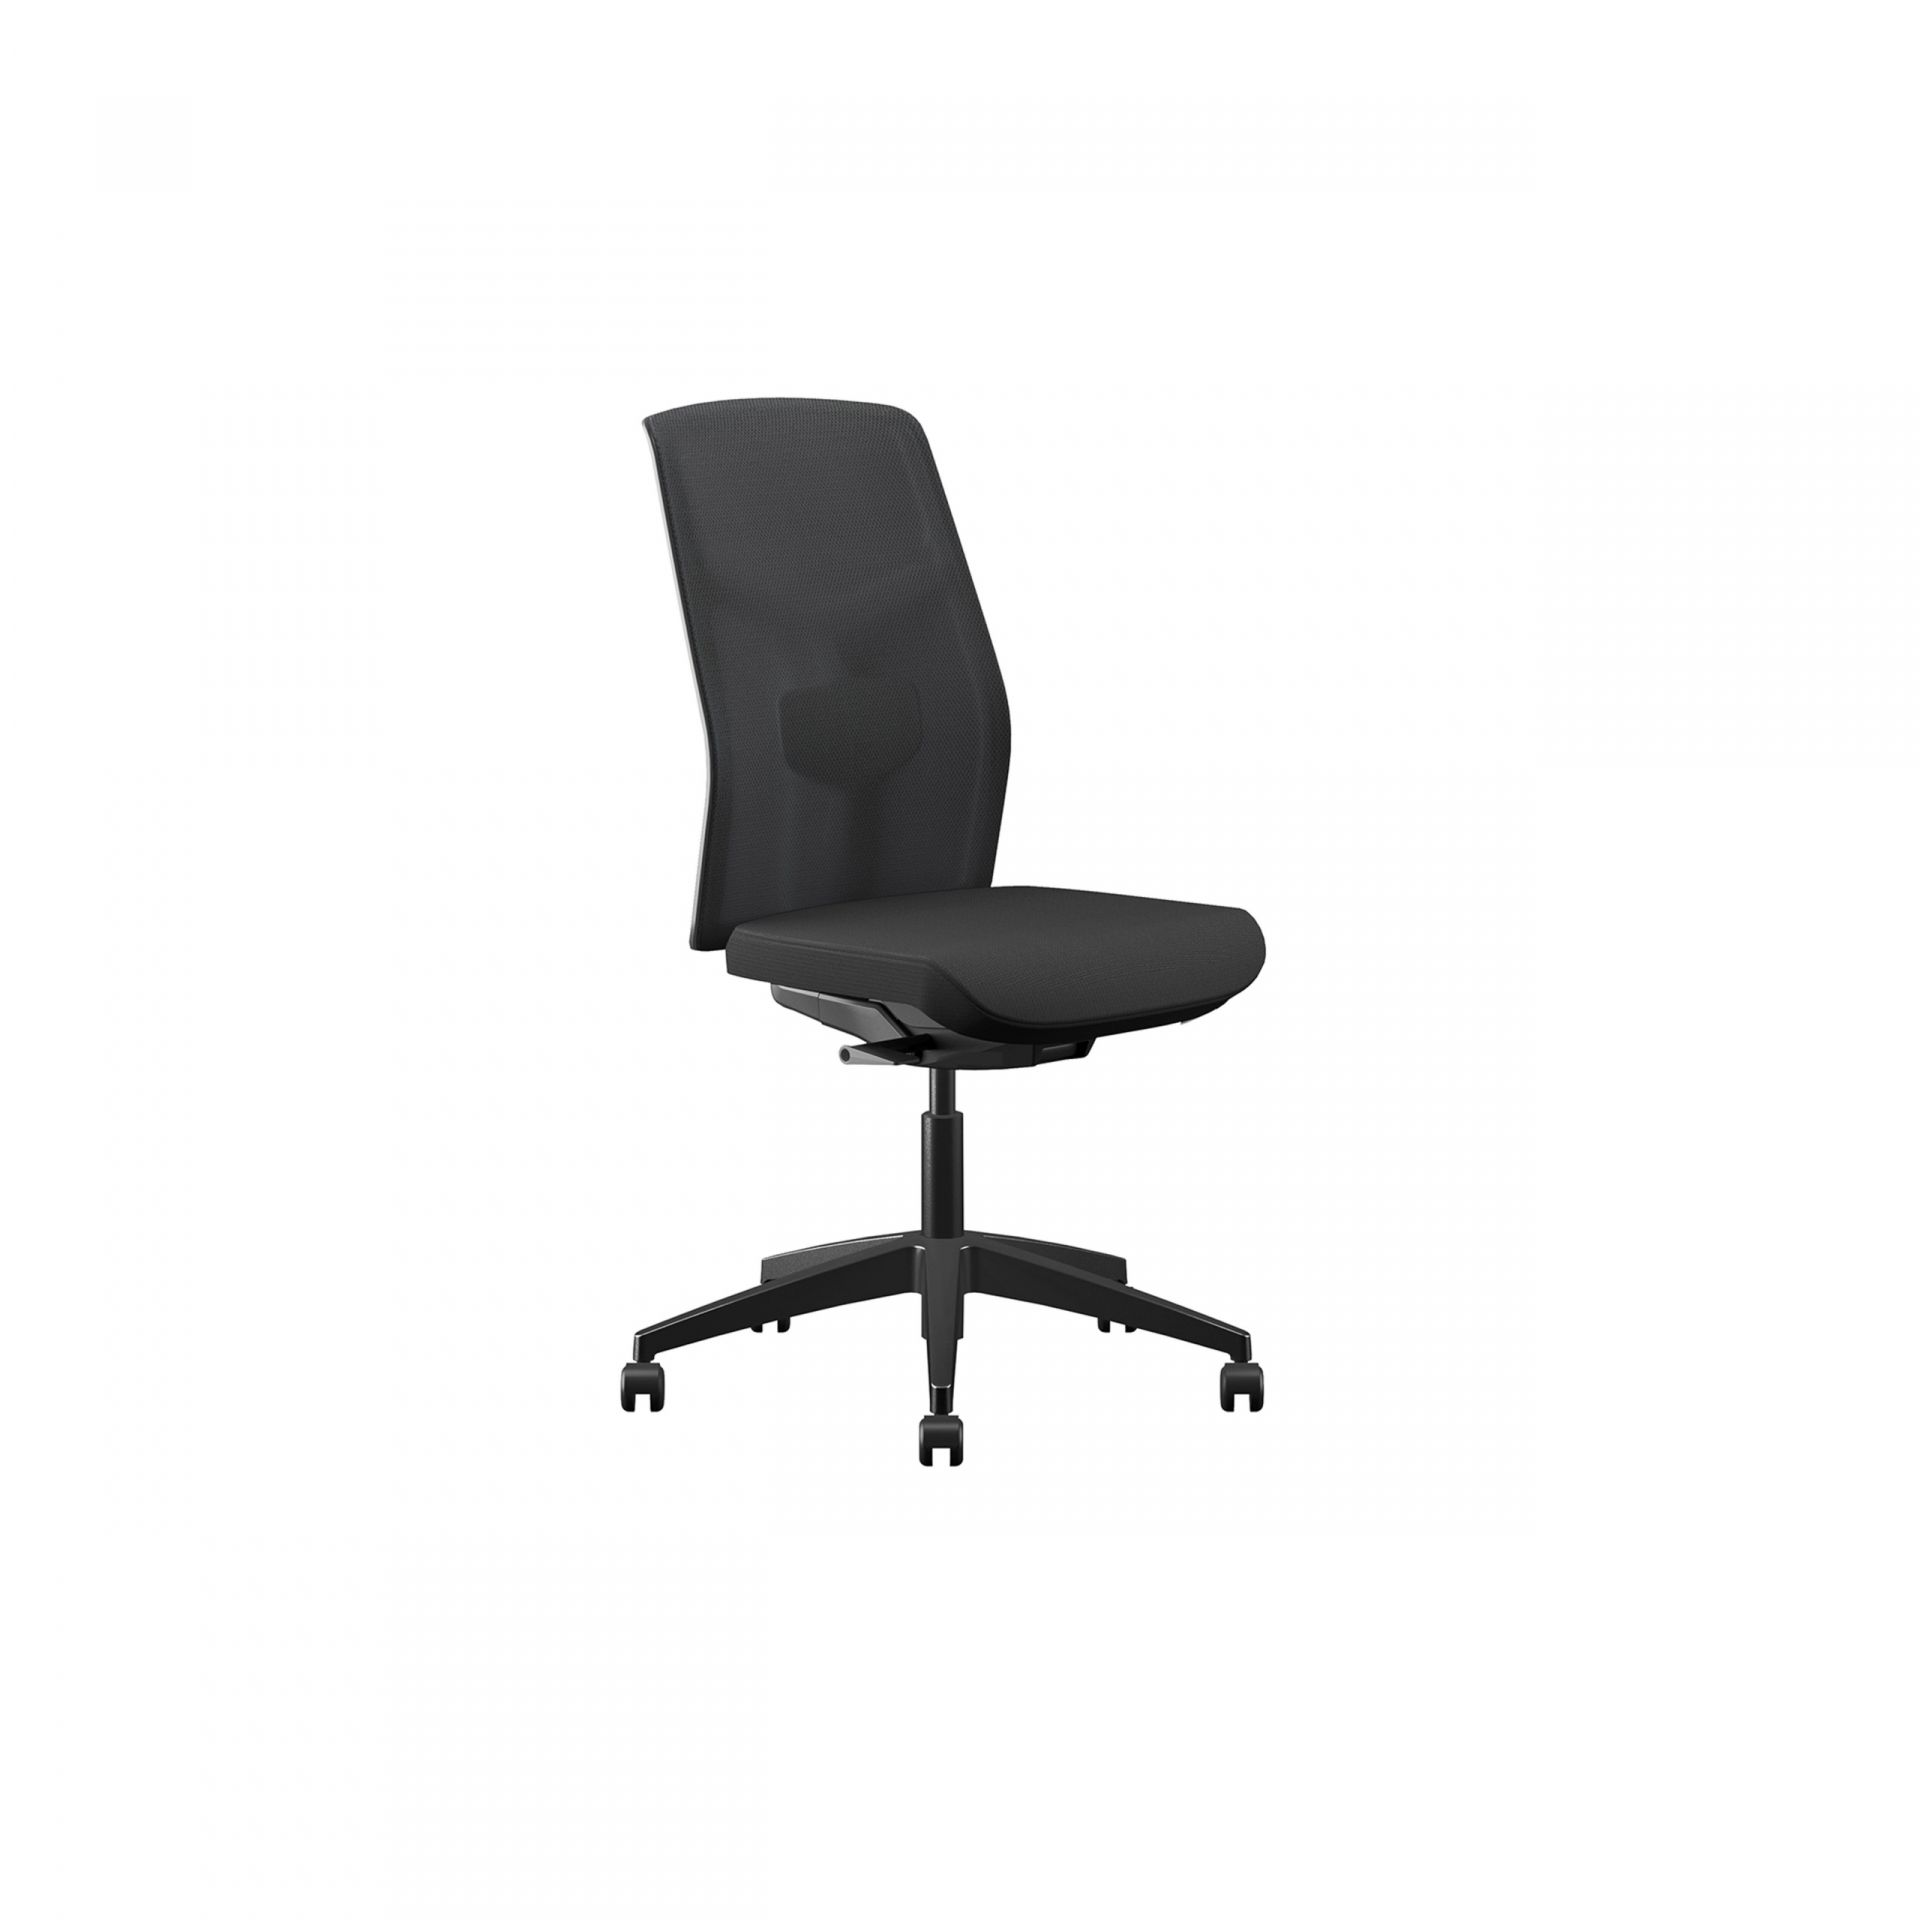 Yoyo Office chair with open mesh back product image 3